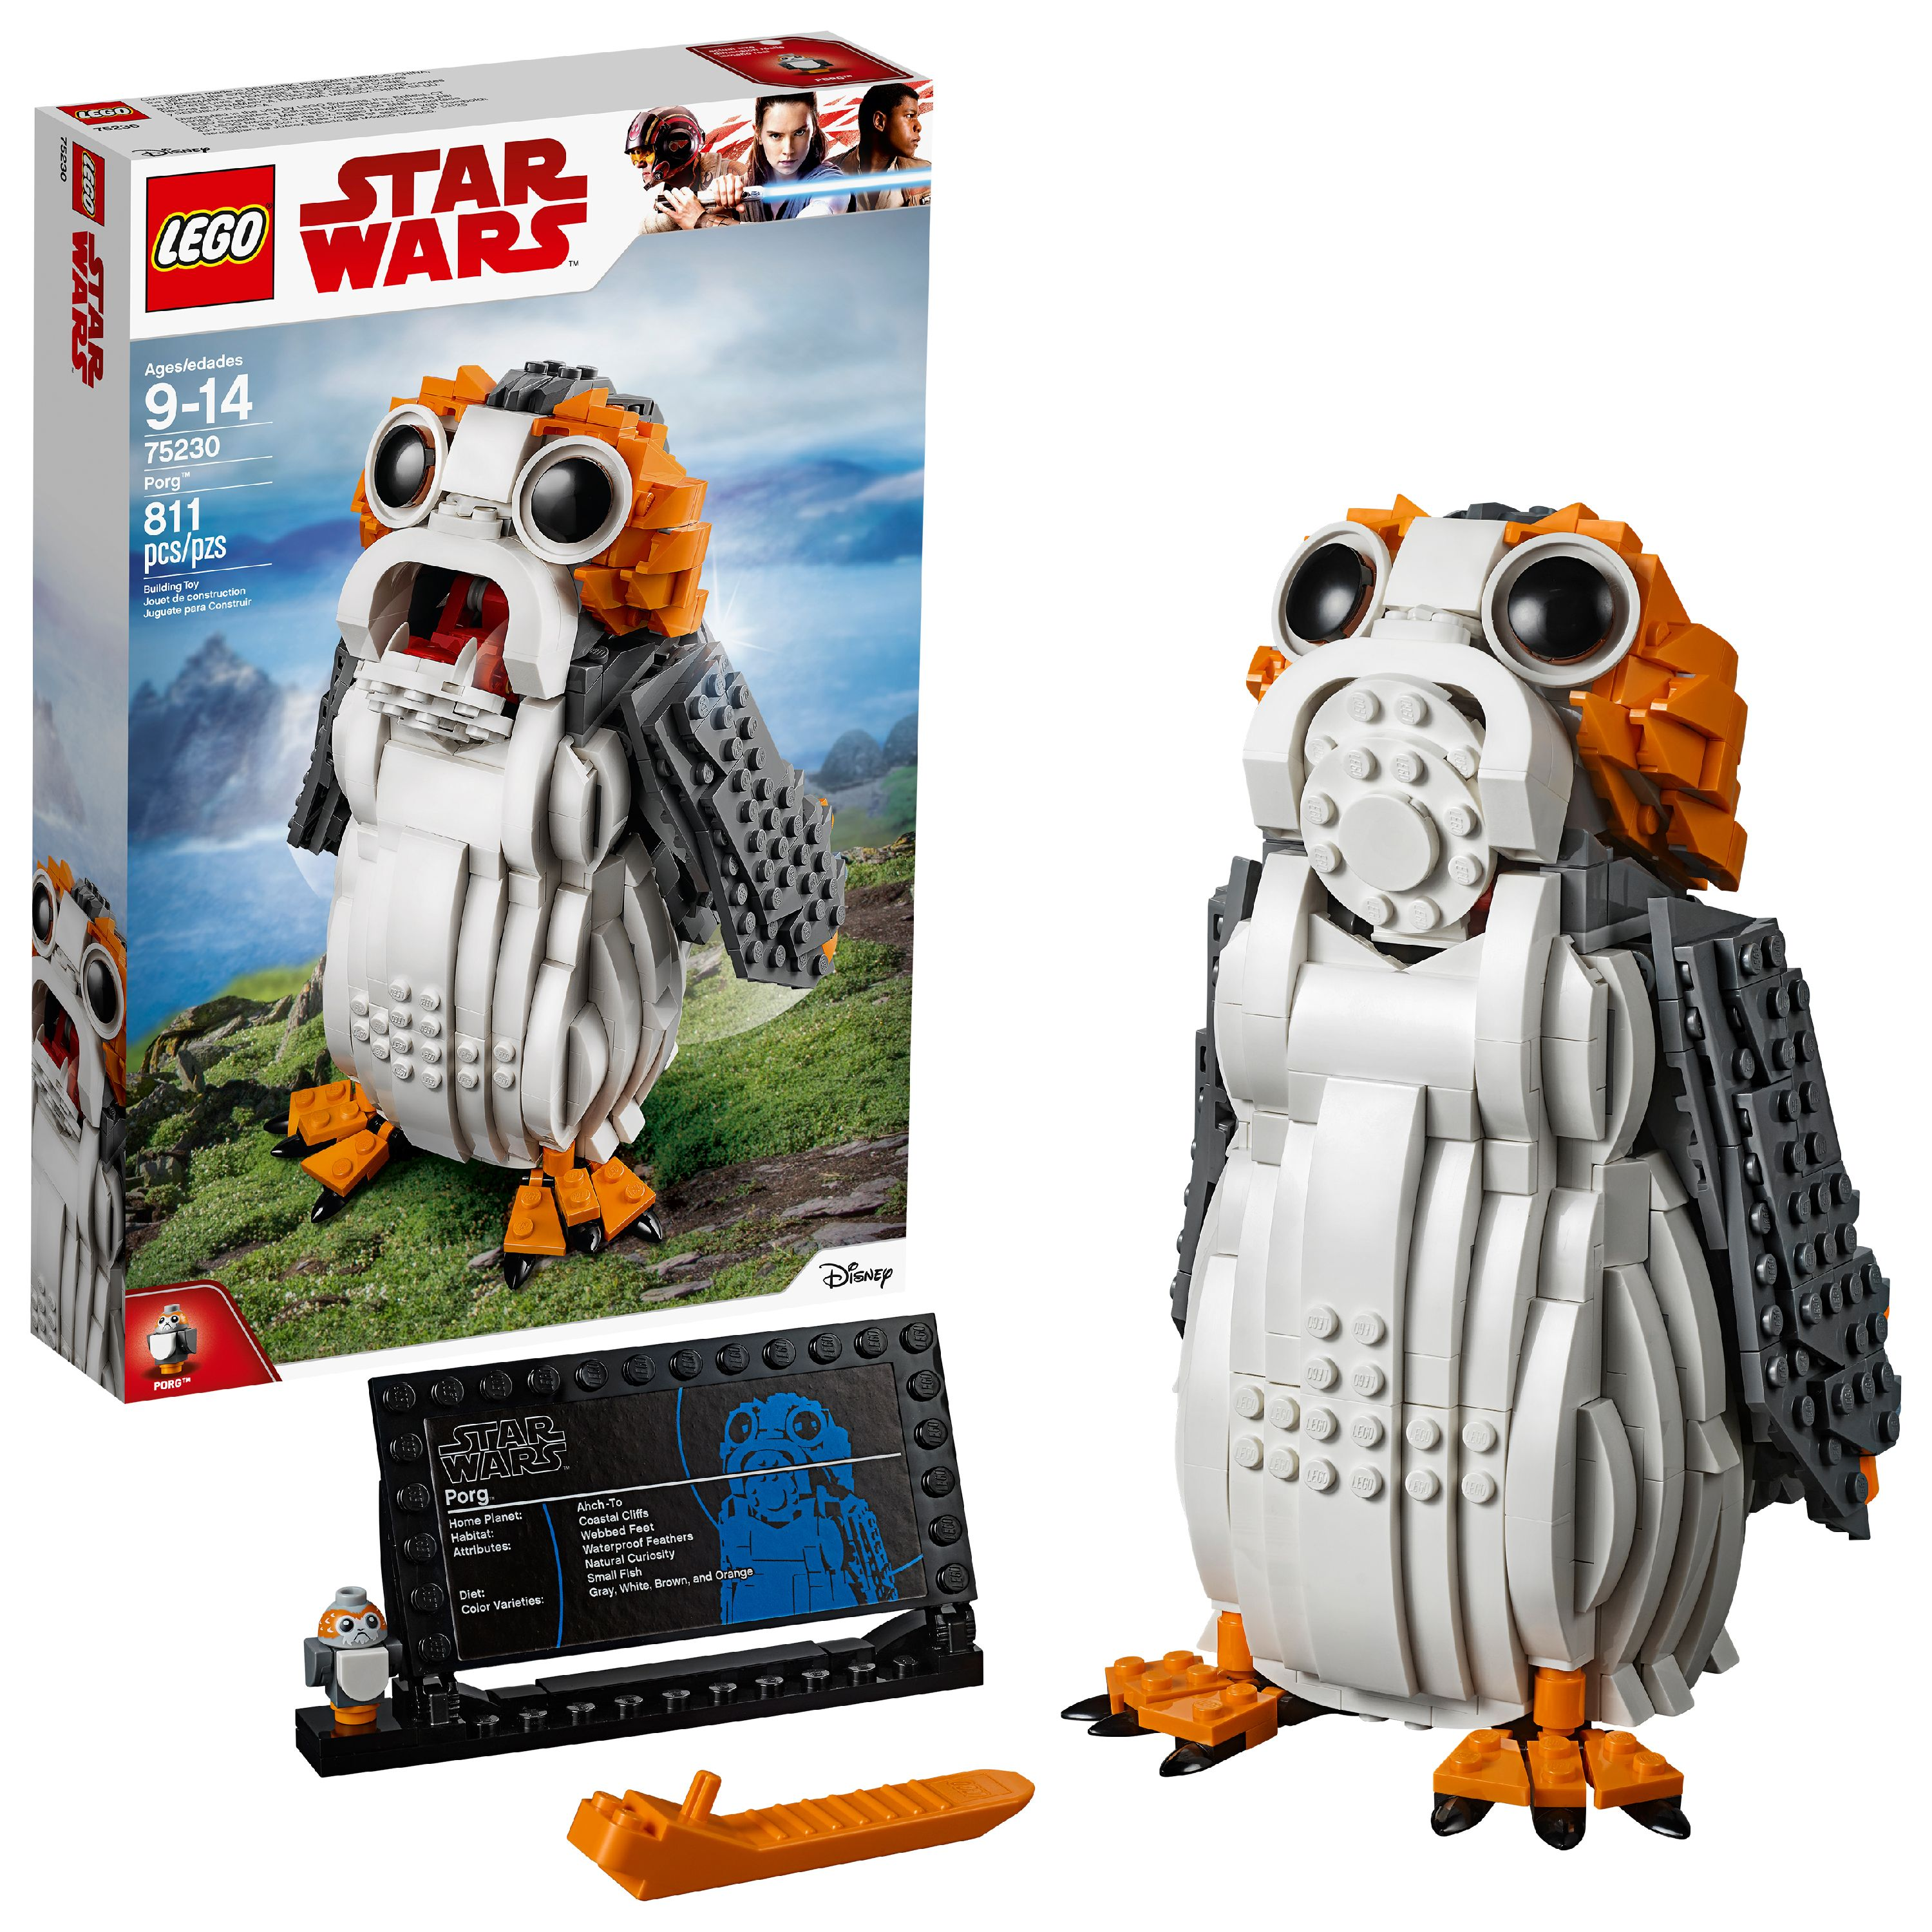 LEGO Star Wars TM Porg 75230 Building Set (811 Pieces)